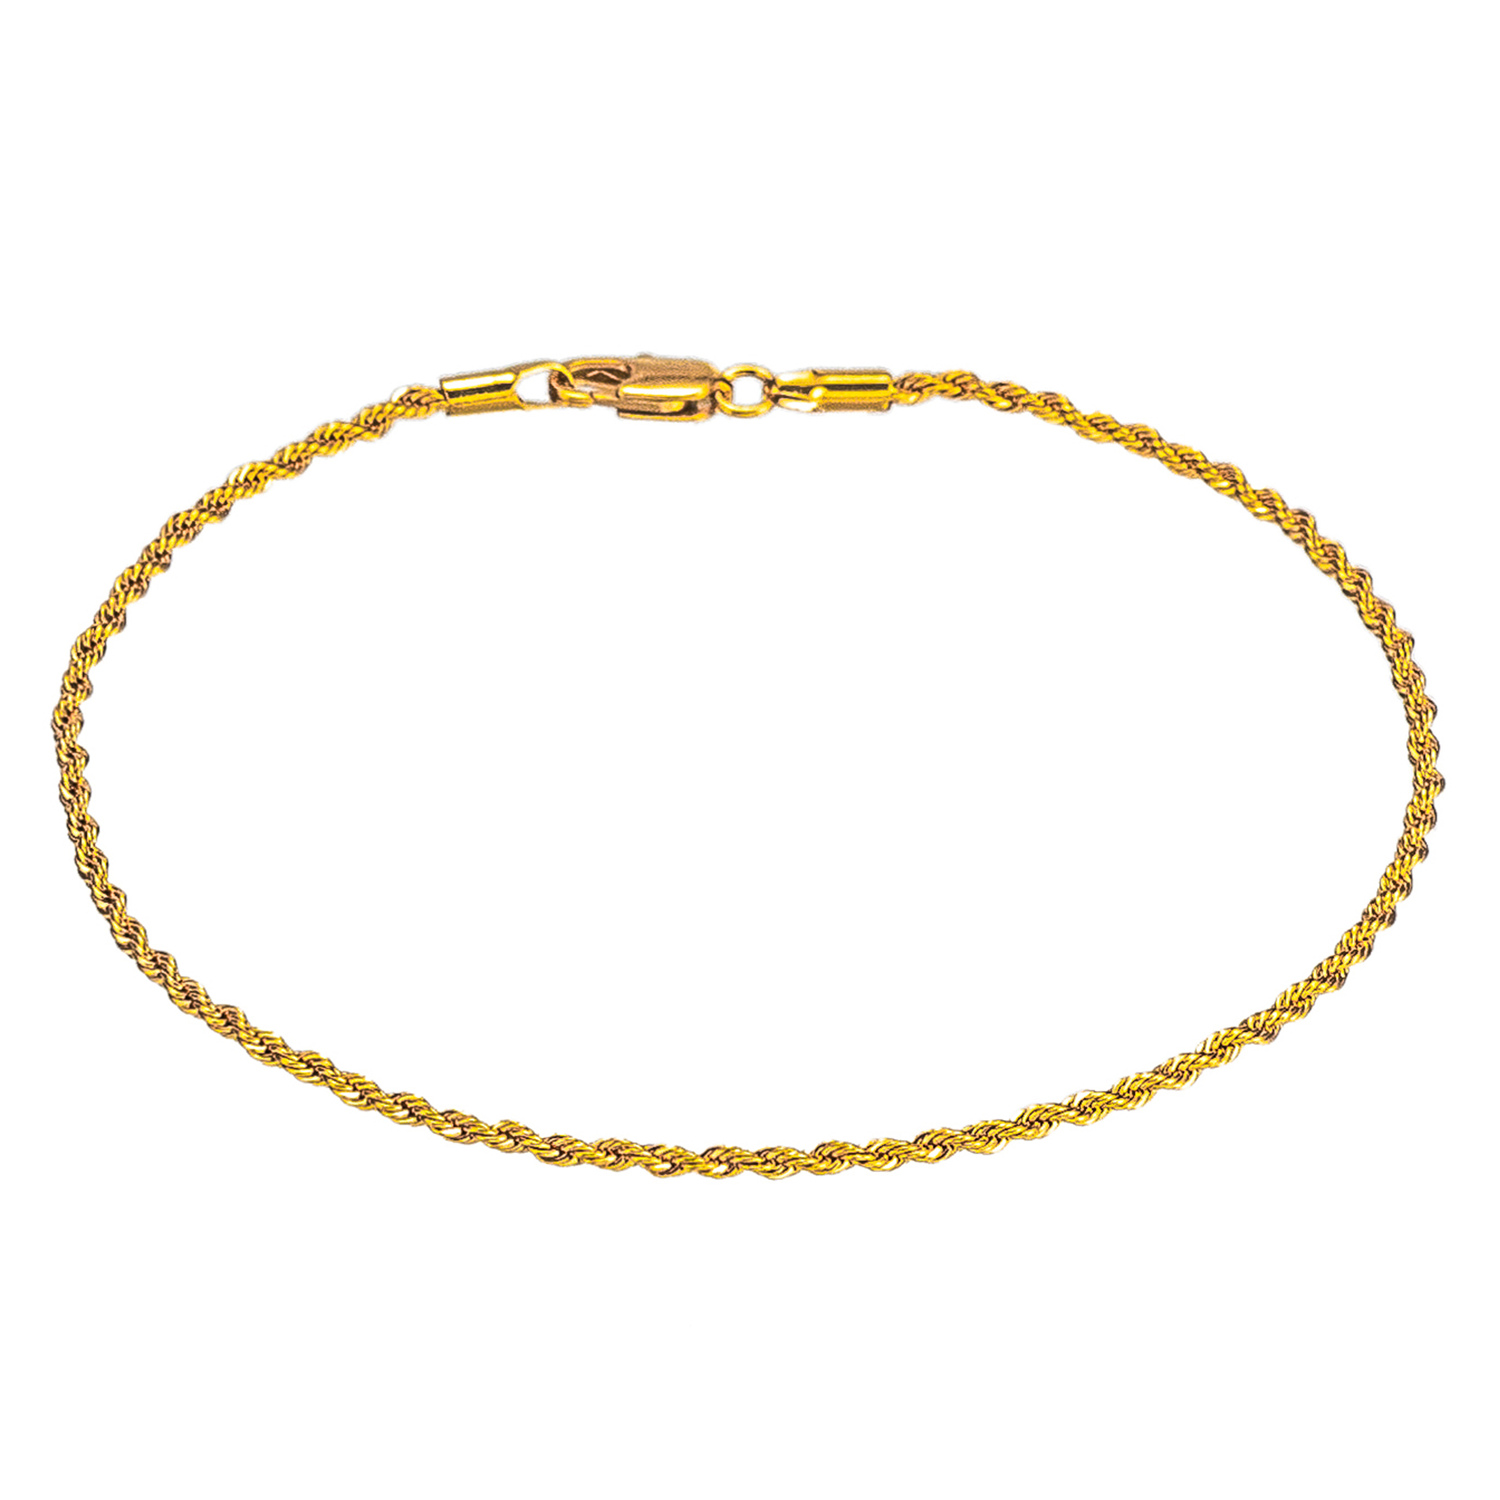 Gold Color/White Color 2mm Rope Link Chain Flat Anklet, 9 10 11 inches Ankle Bracelet for Women Men Waterproof